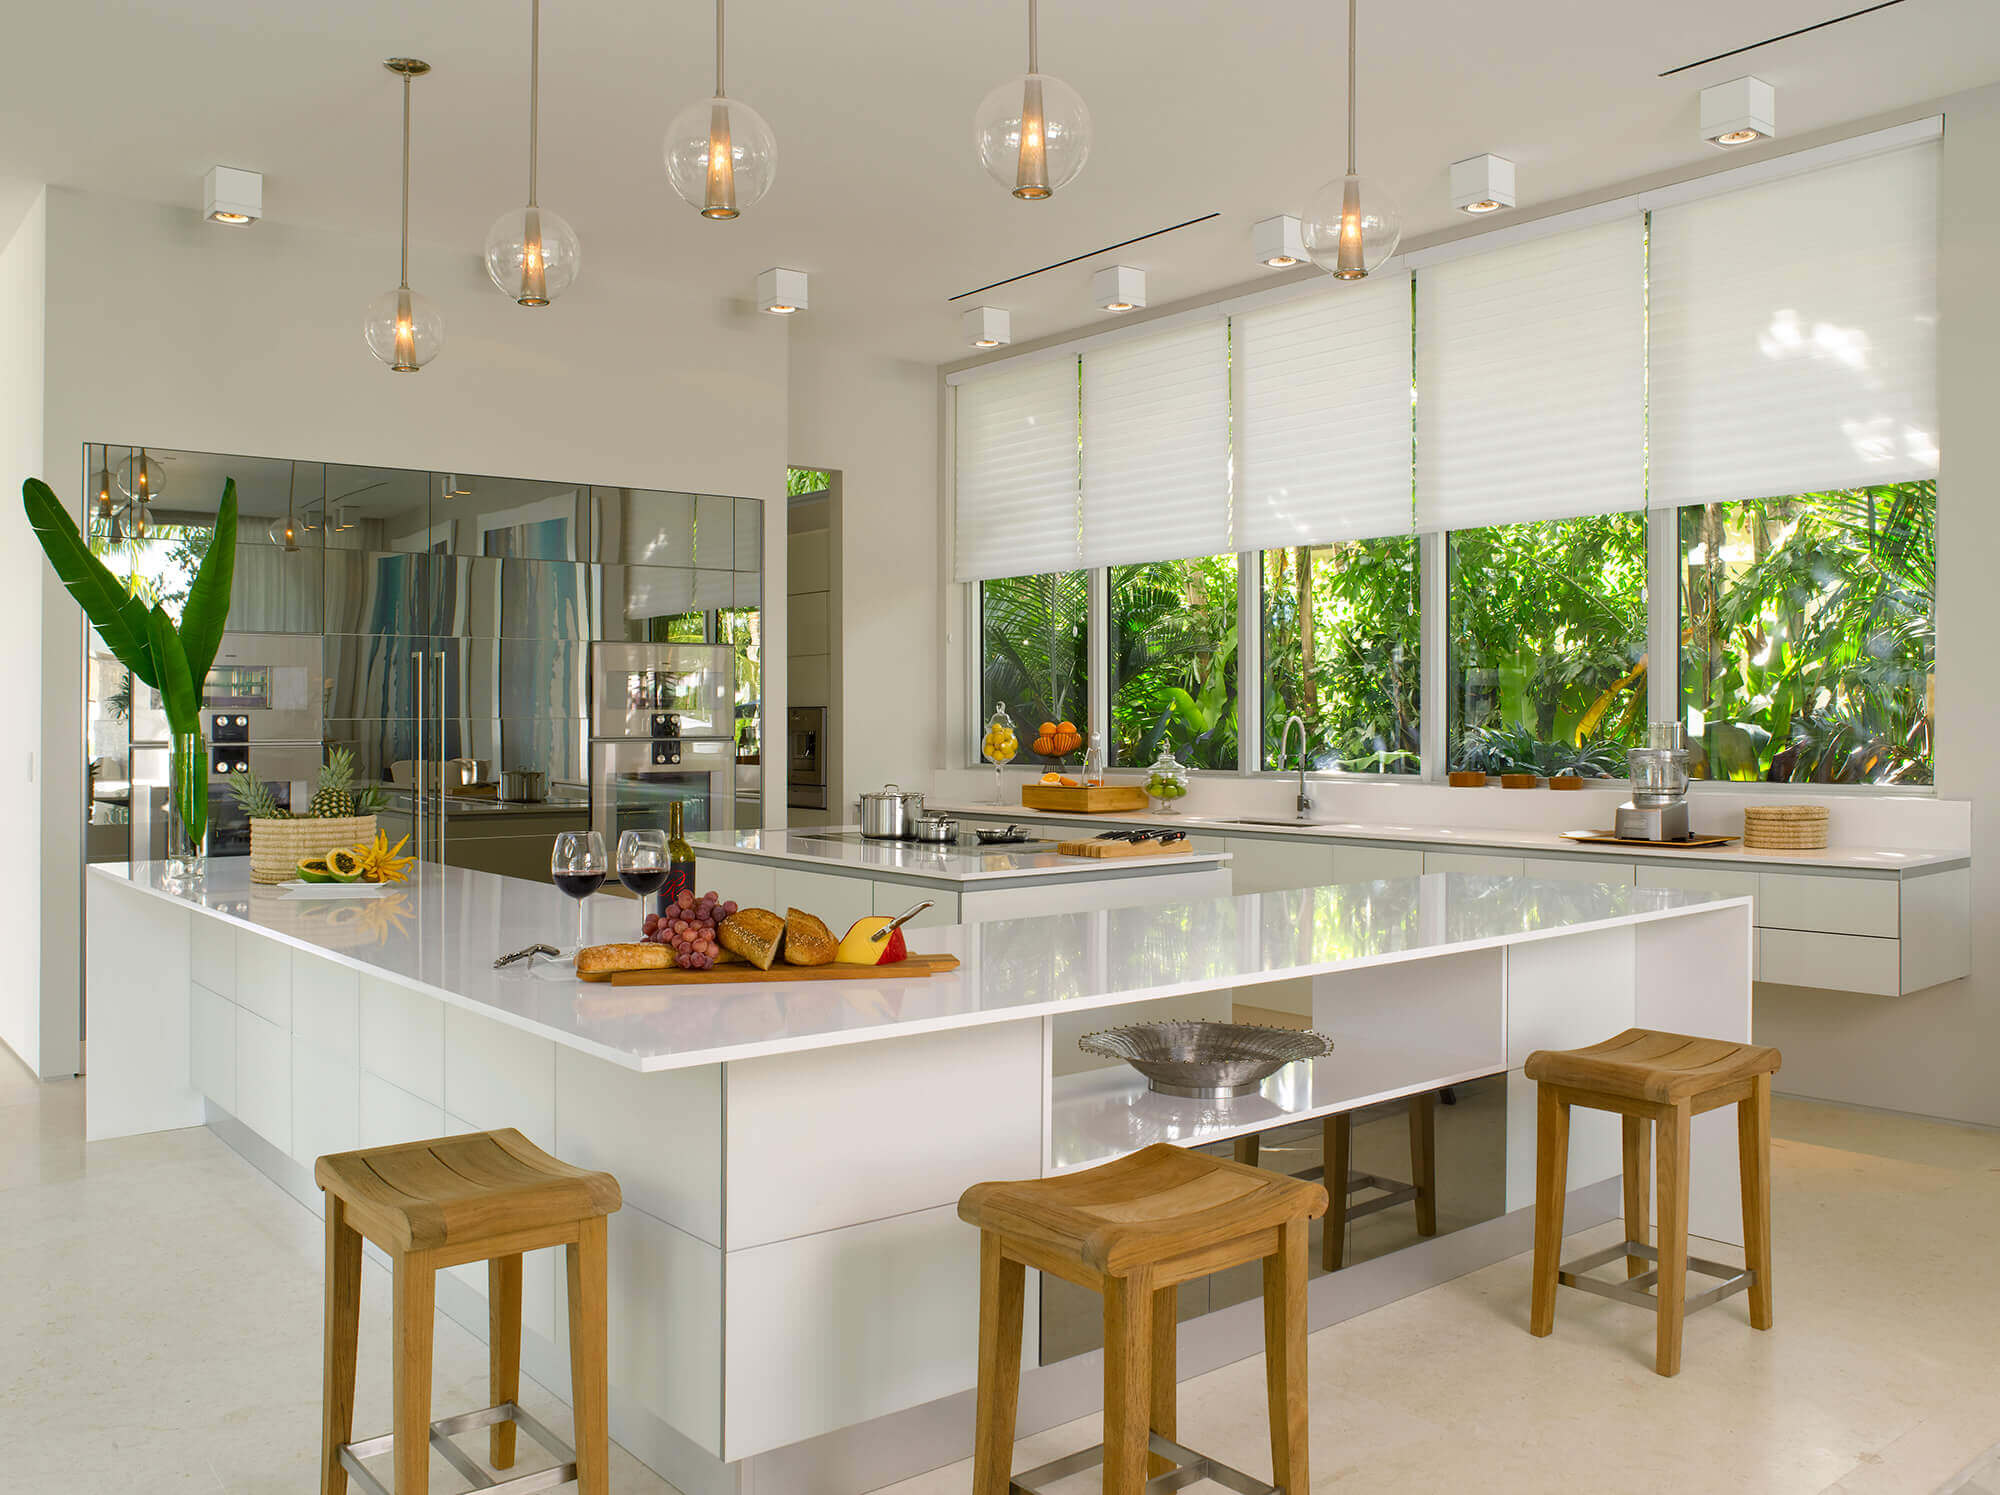 78 great looking modern kitchen gallery sinks islands for Photos of new kitchen designs